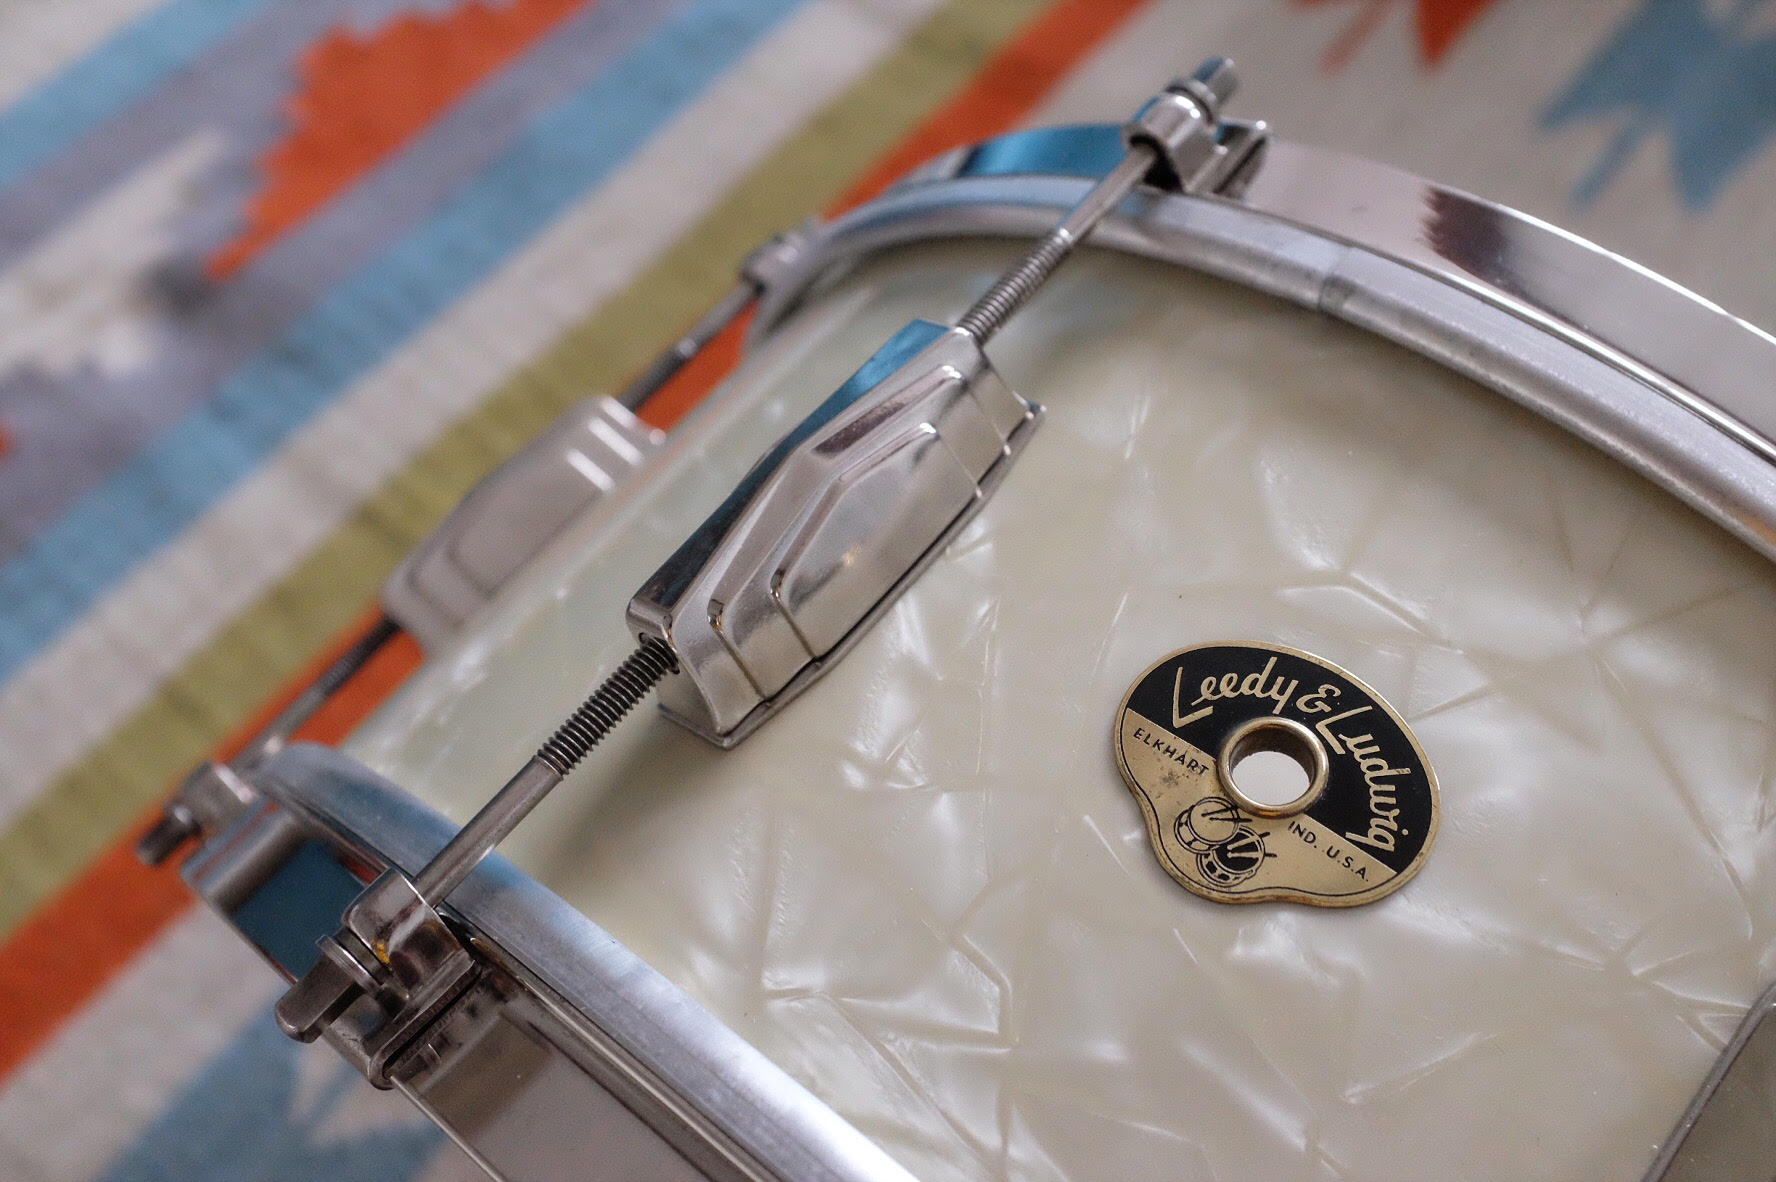 """1954 Leedy & Ludwig 'The Reliance' 14x6.5"""" in original White Marine Pearl. Restored in Spring 2018."""